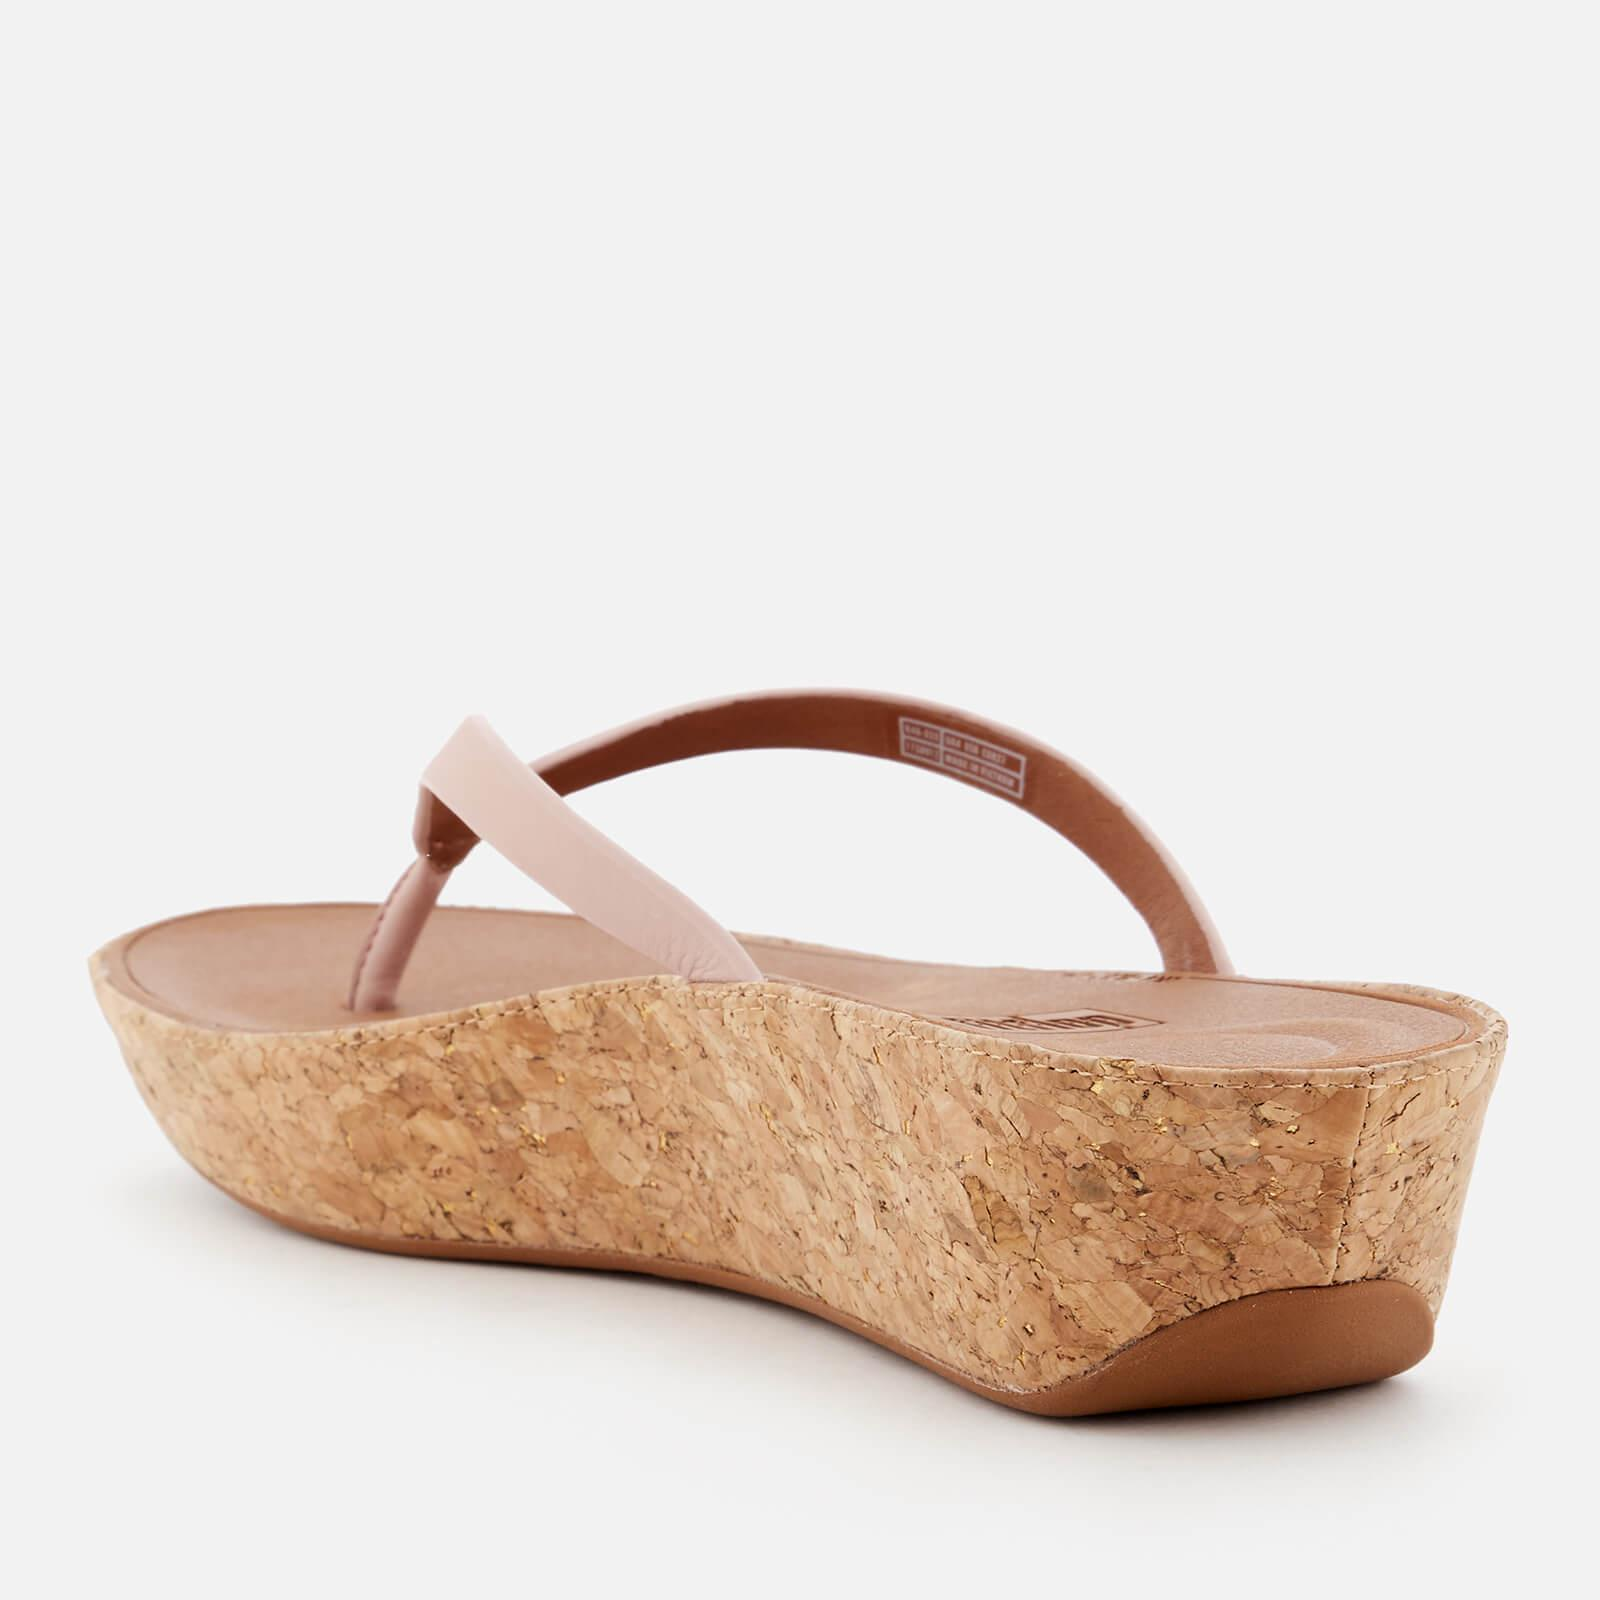 0724eb0c09e7 Fitflop - Pink Linny Wedged Toe Post Sandals - Lyst. View fullscreen